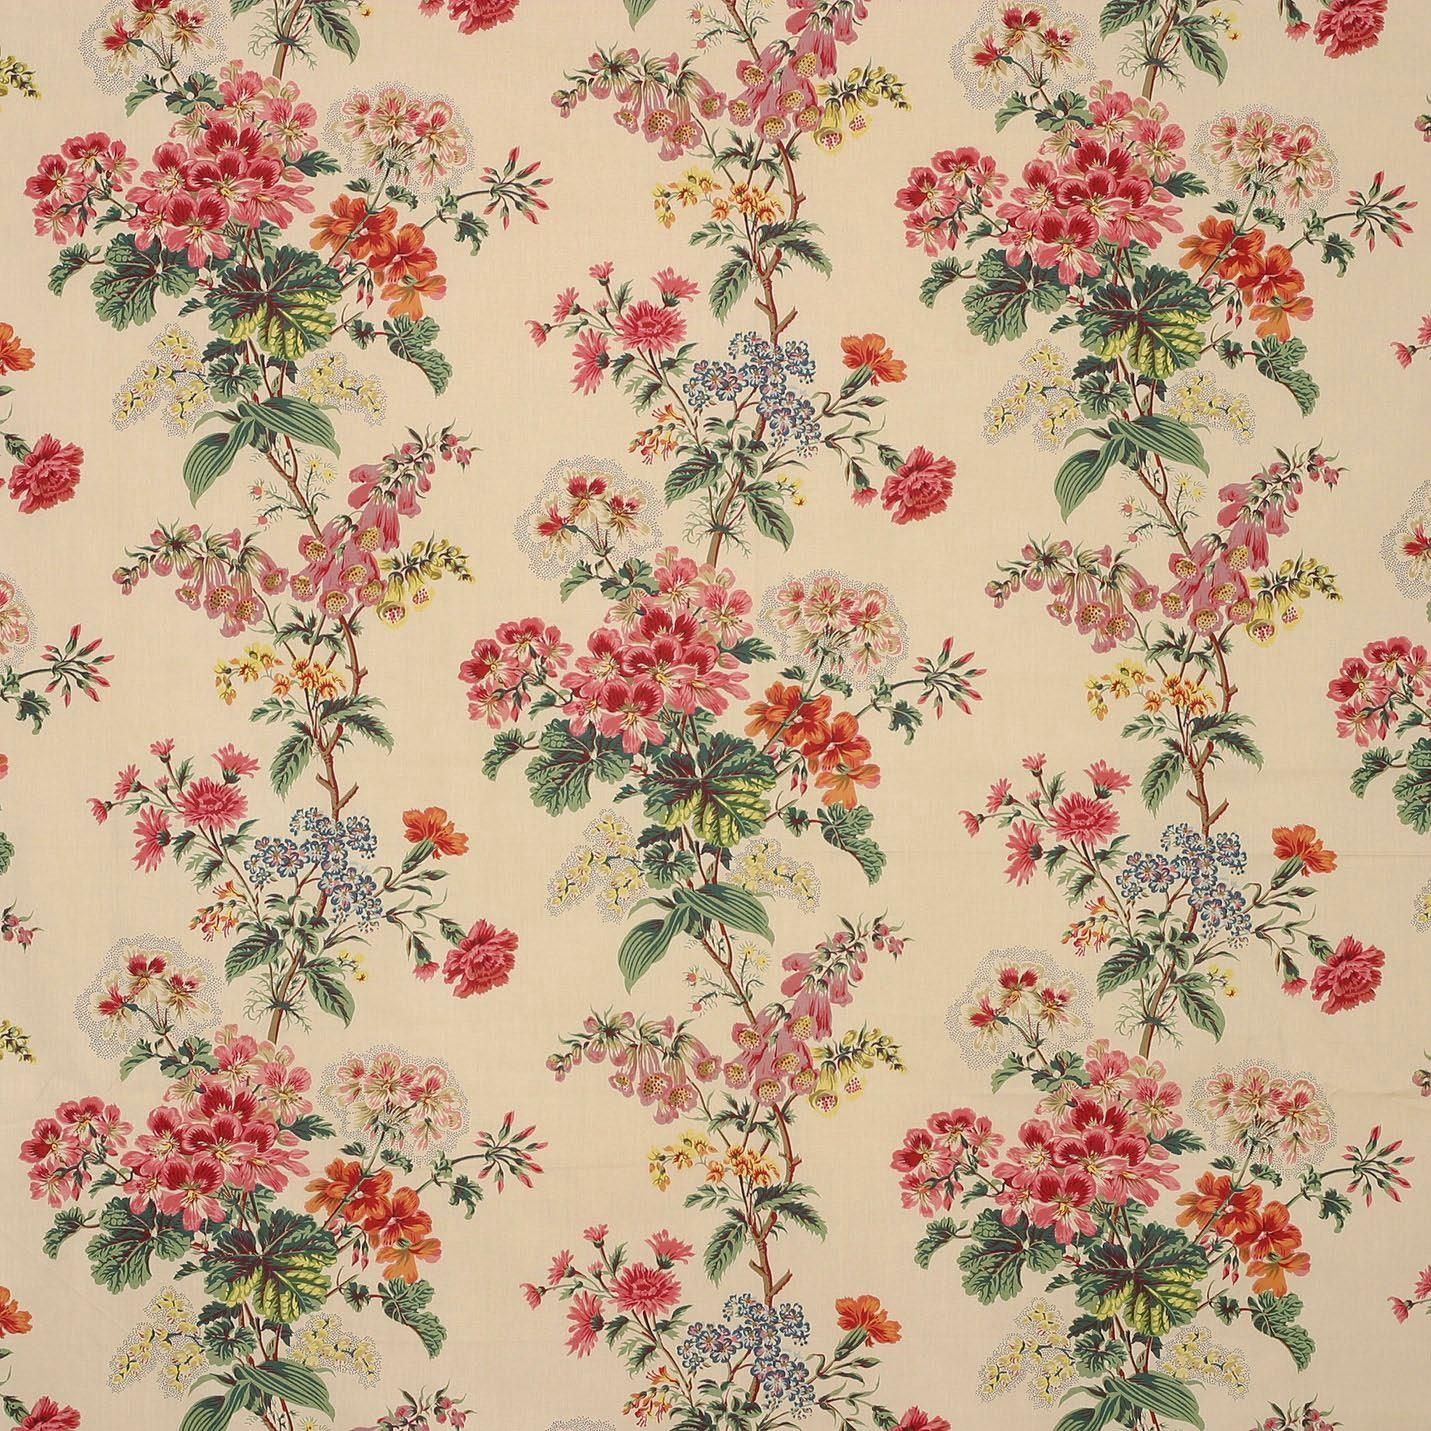 le manach 39 s palmyre fabric first printed in 1931 and